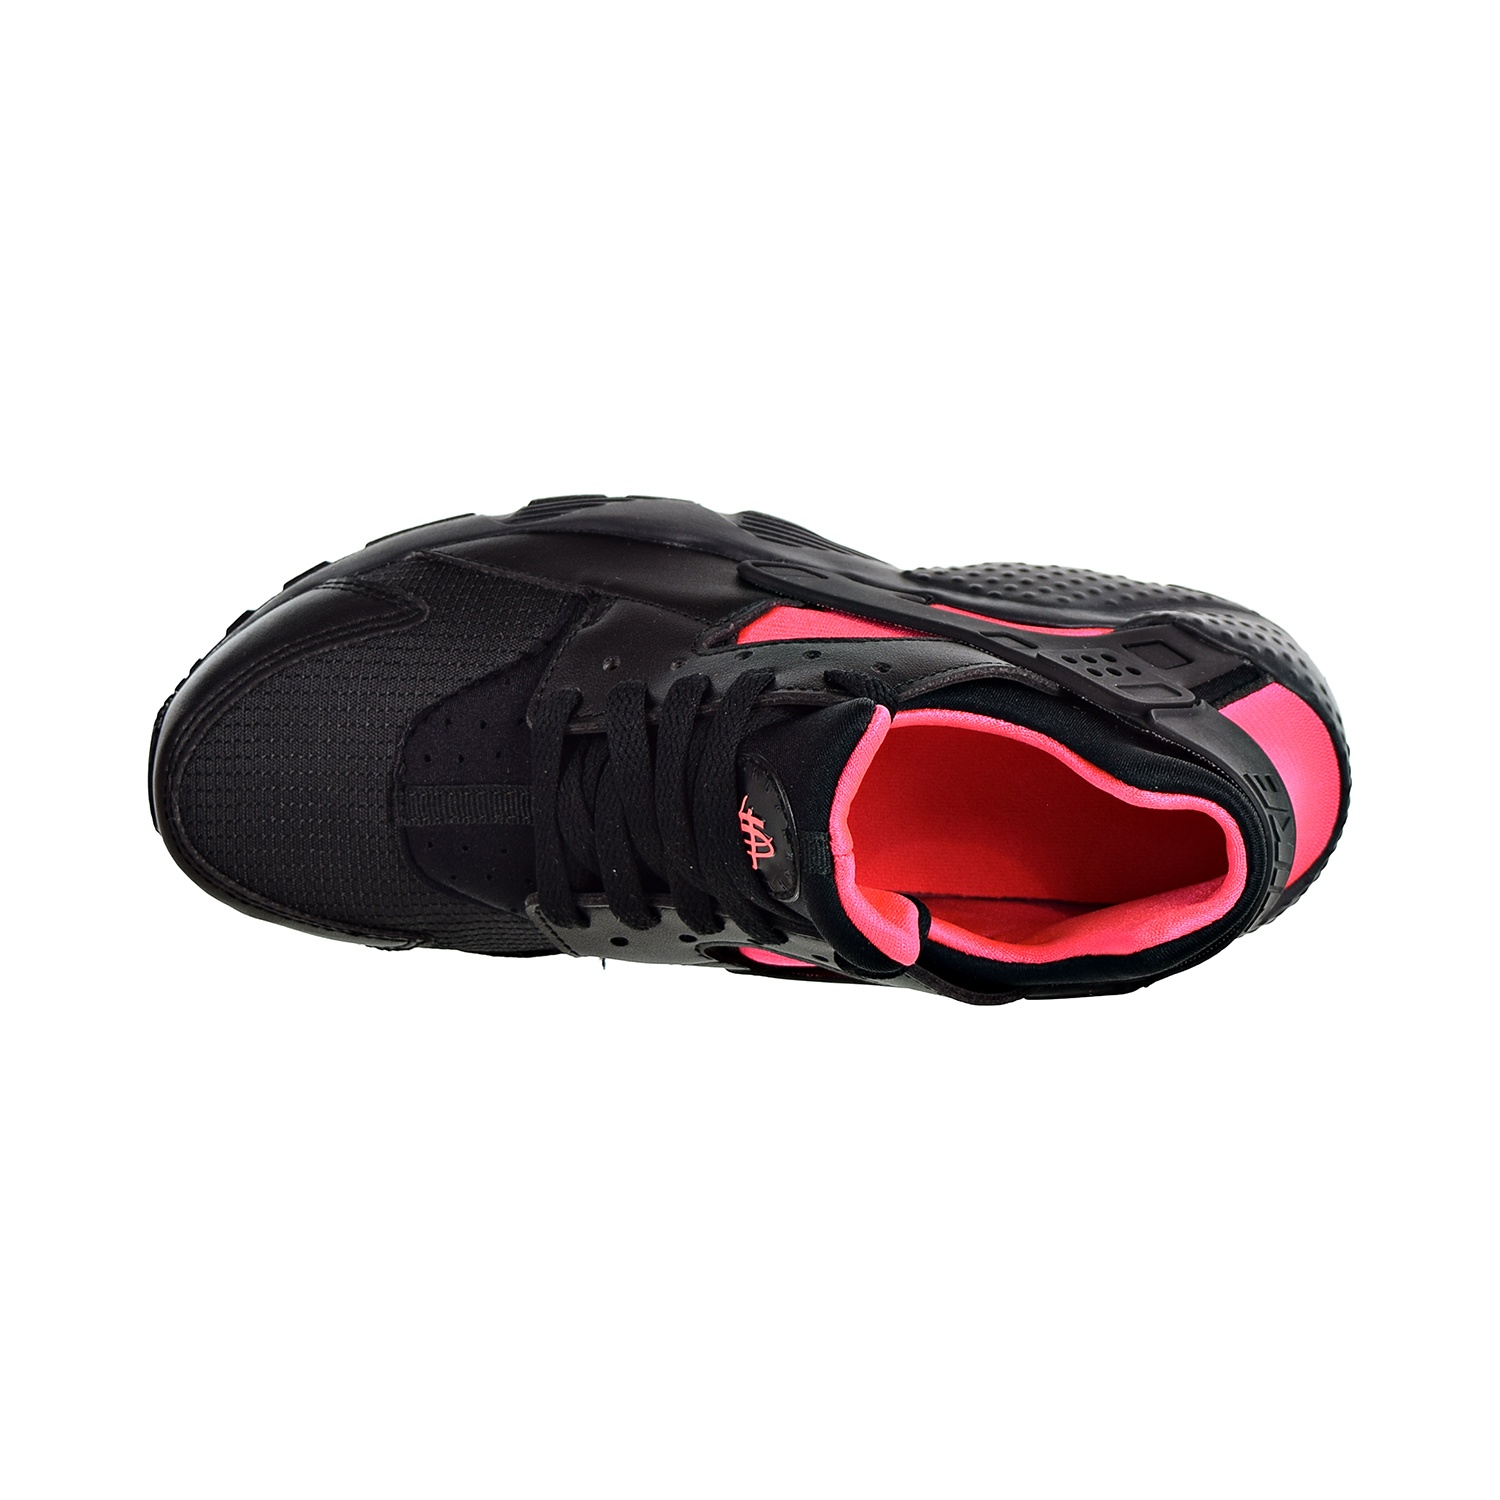 b7bc73ee7c Nike Huarache Run Big Kids' Shoes Black/Anthracite/Solar Red 654275-037